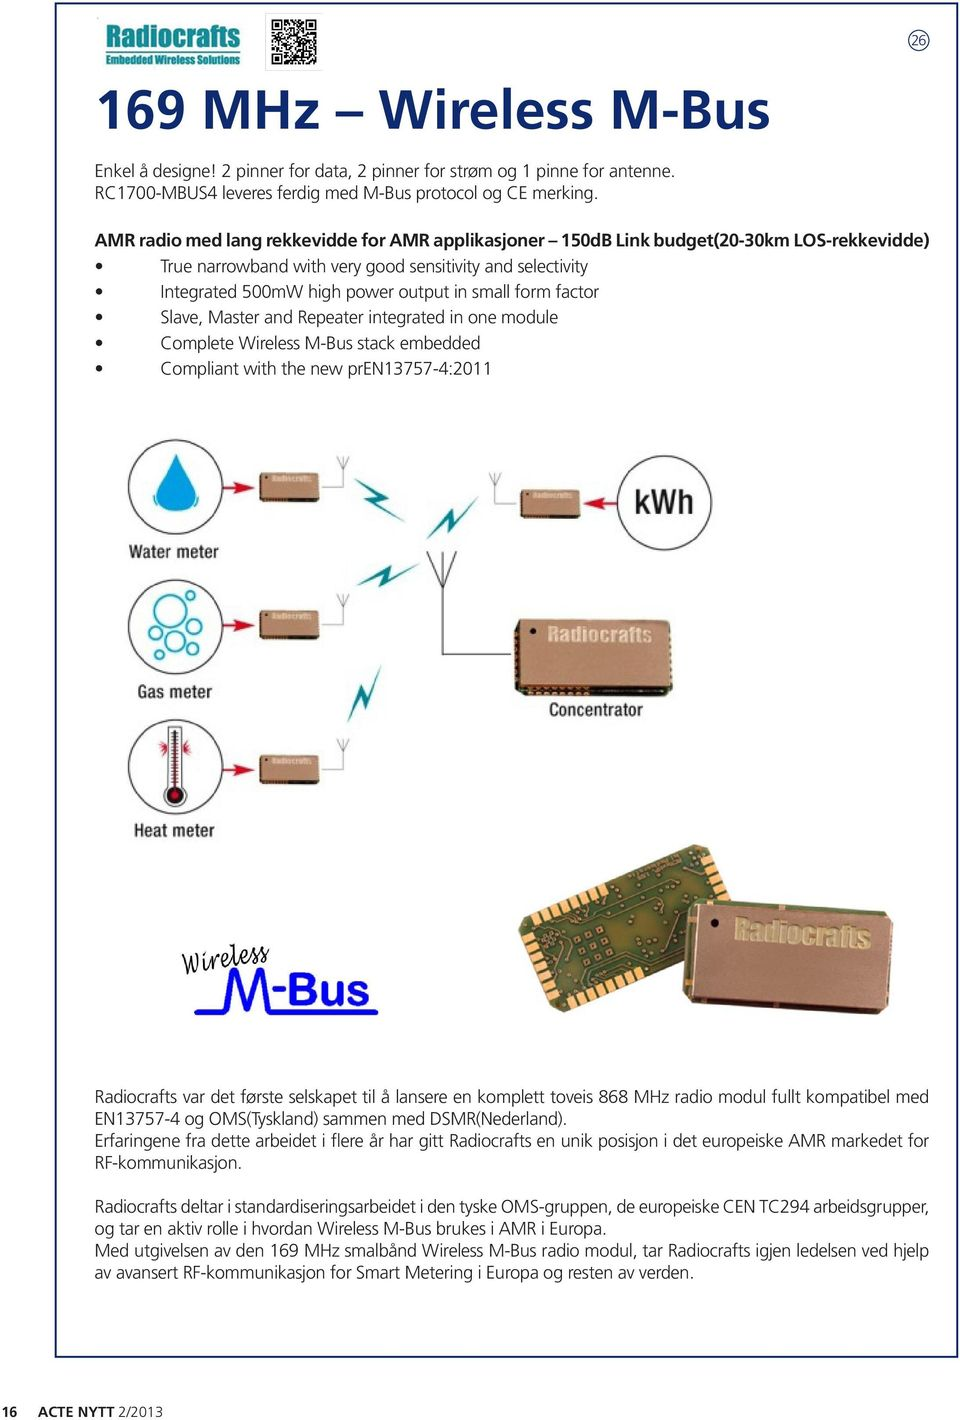 form factor Slave, Master and Repeater integrated in one module Complete Wireless M-Bus stack embedded Compliant with the new pren13757-4:2011 Radiocrafts var det første selskapet til å lansere en